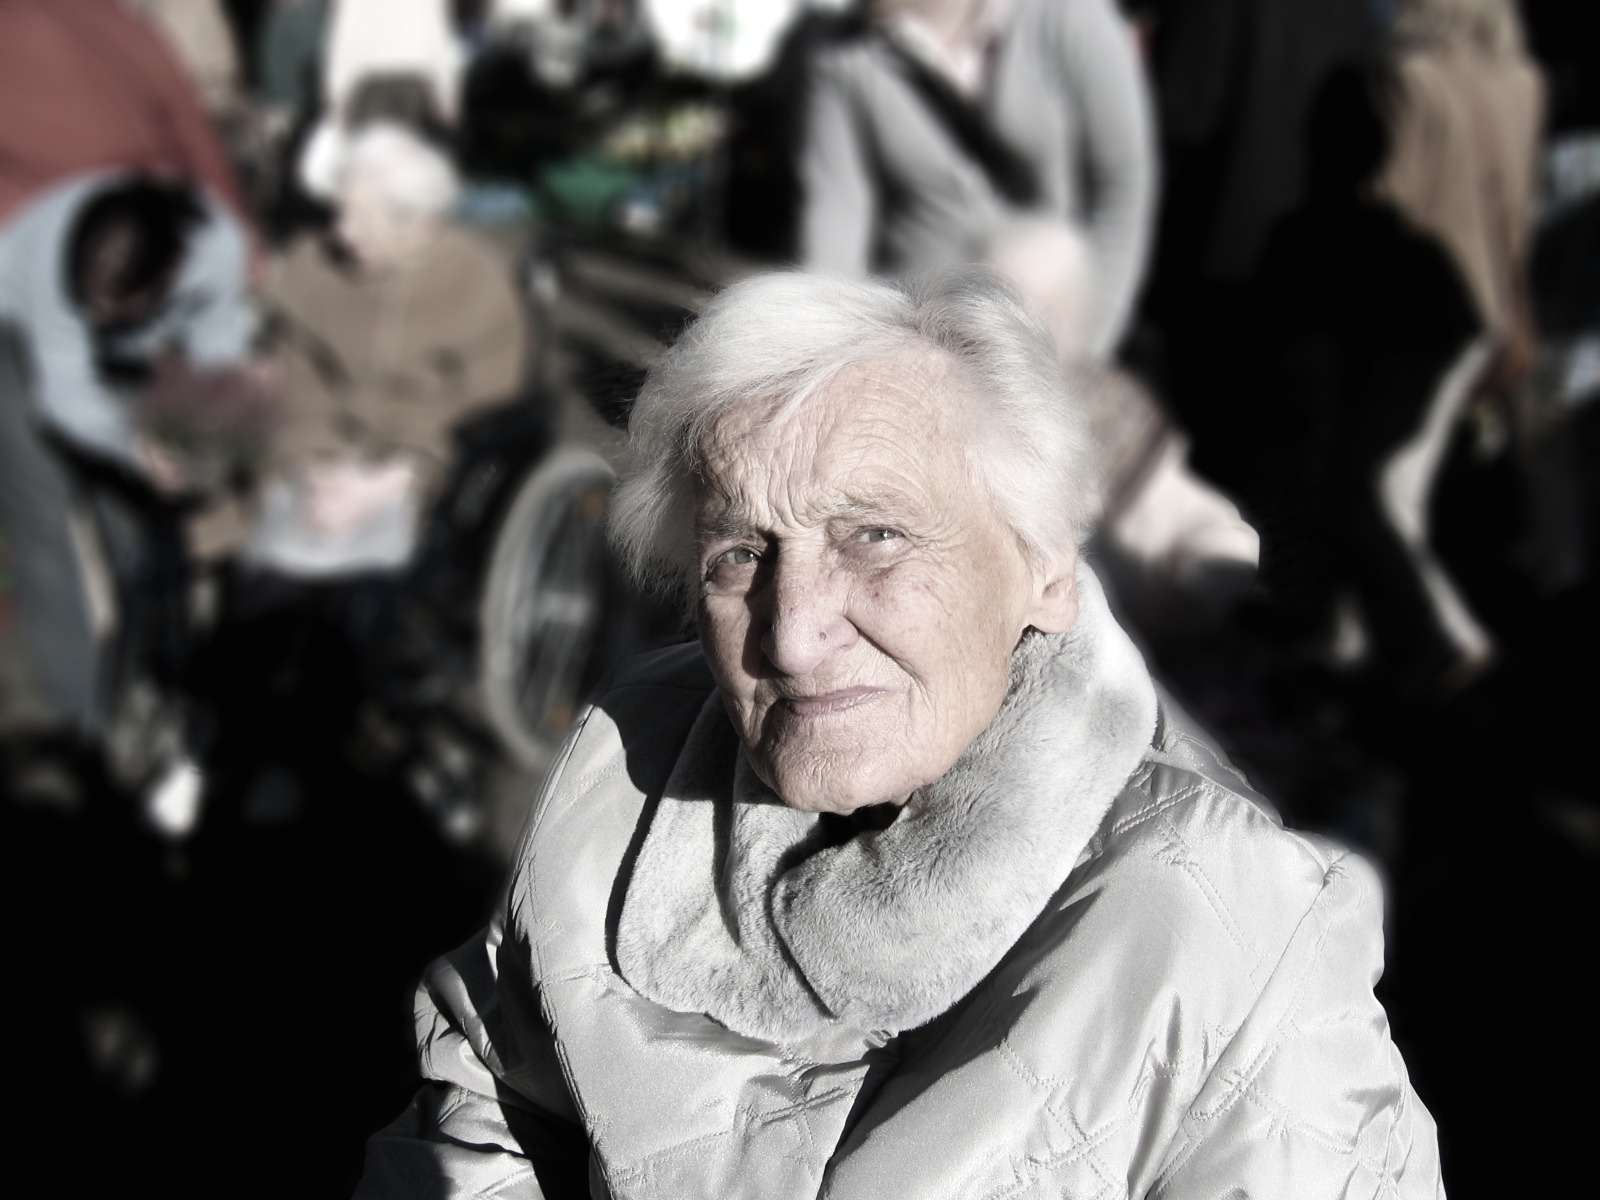 dependent-dementia-woman-old-40900